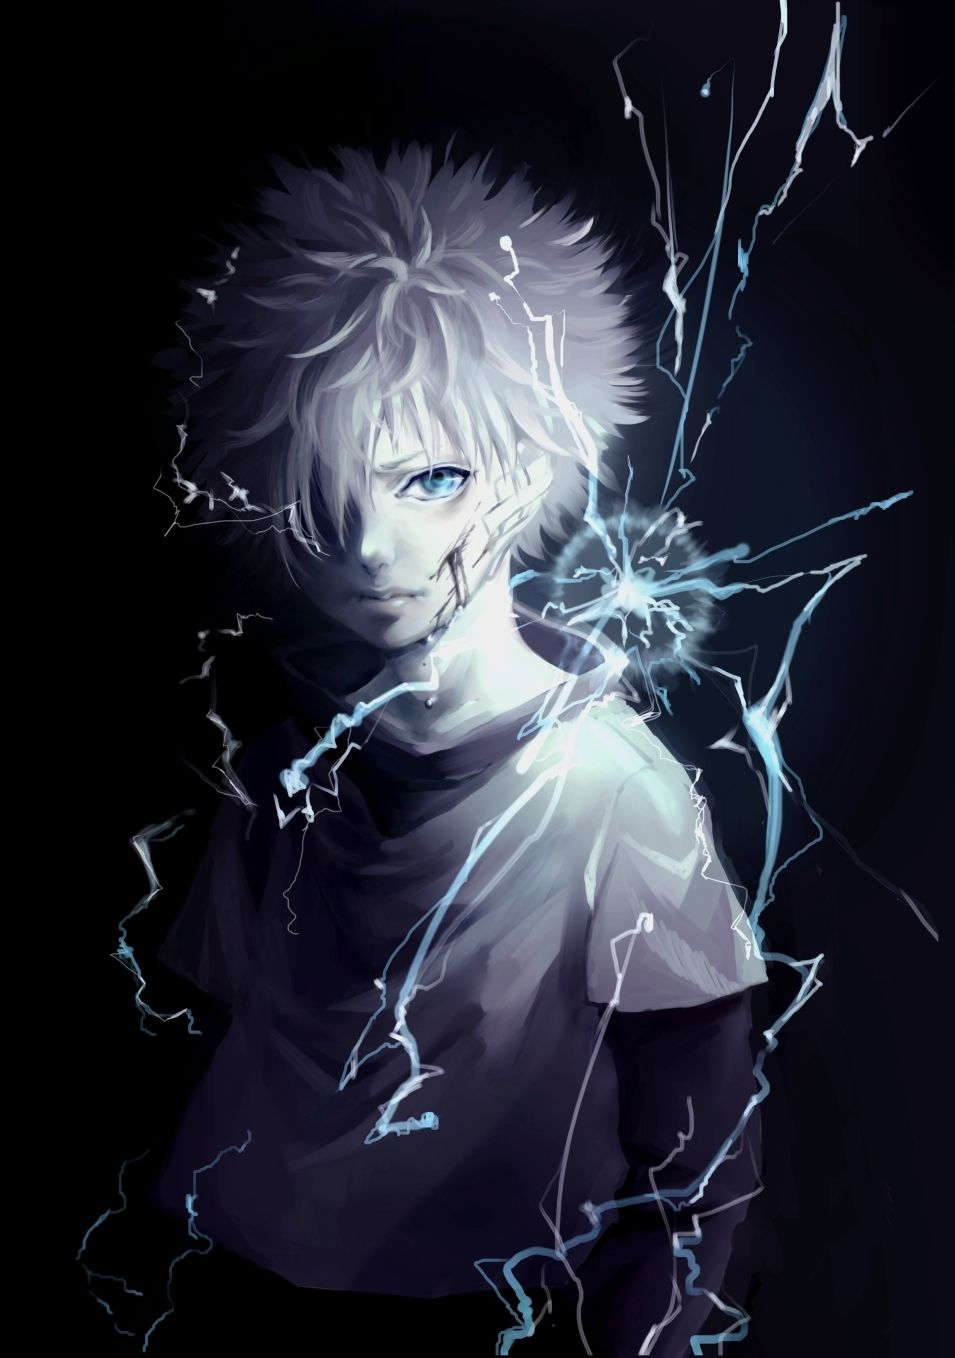 Killua Zoldyck Hunter X Hunter Zoldyck, Kirua, Killua